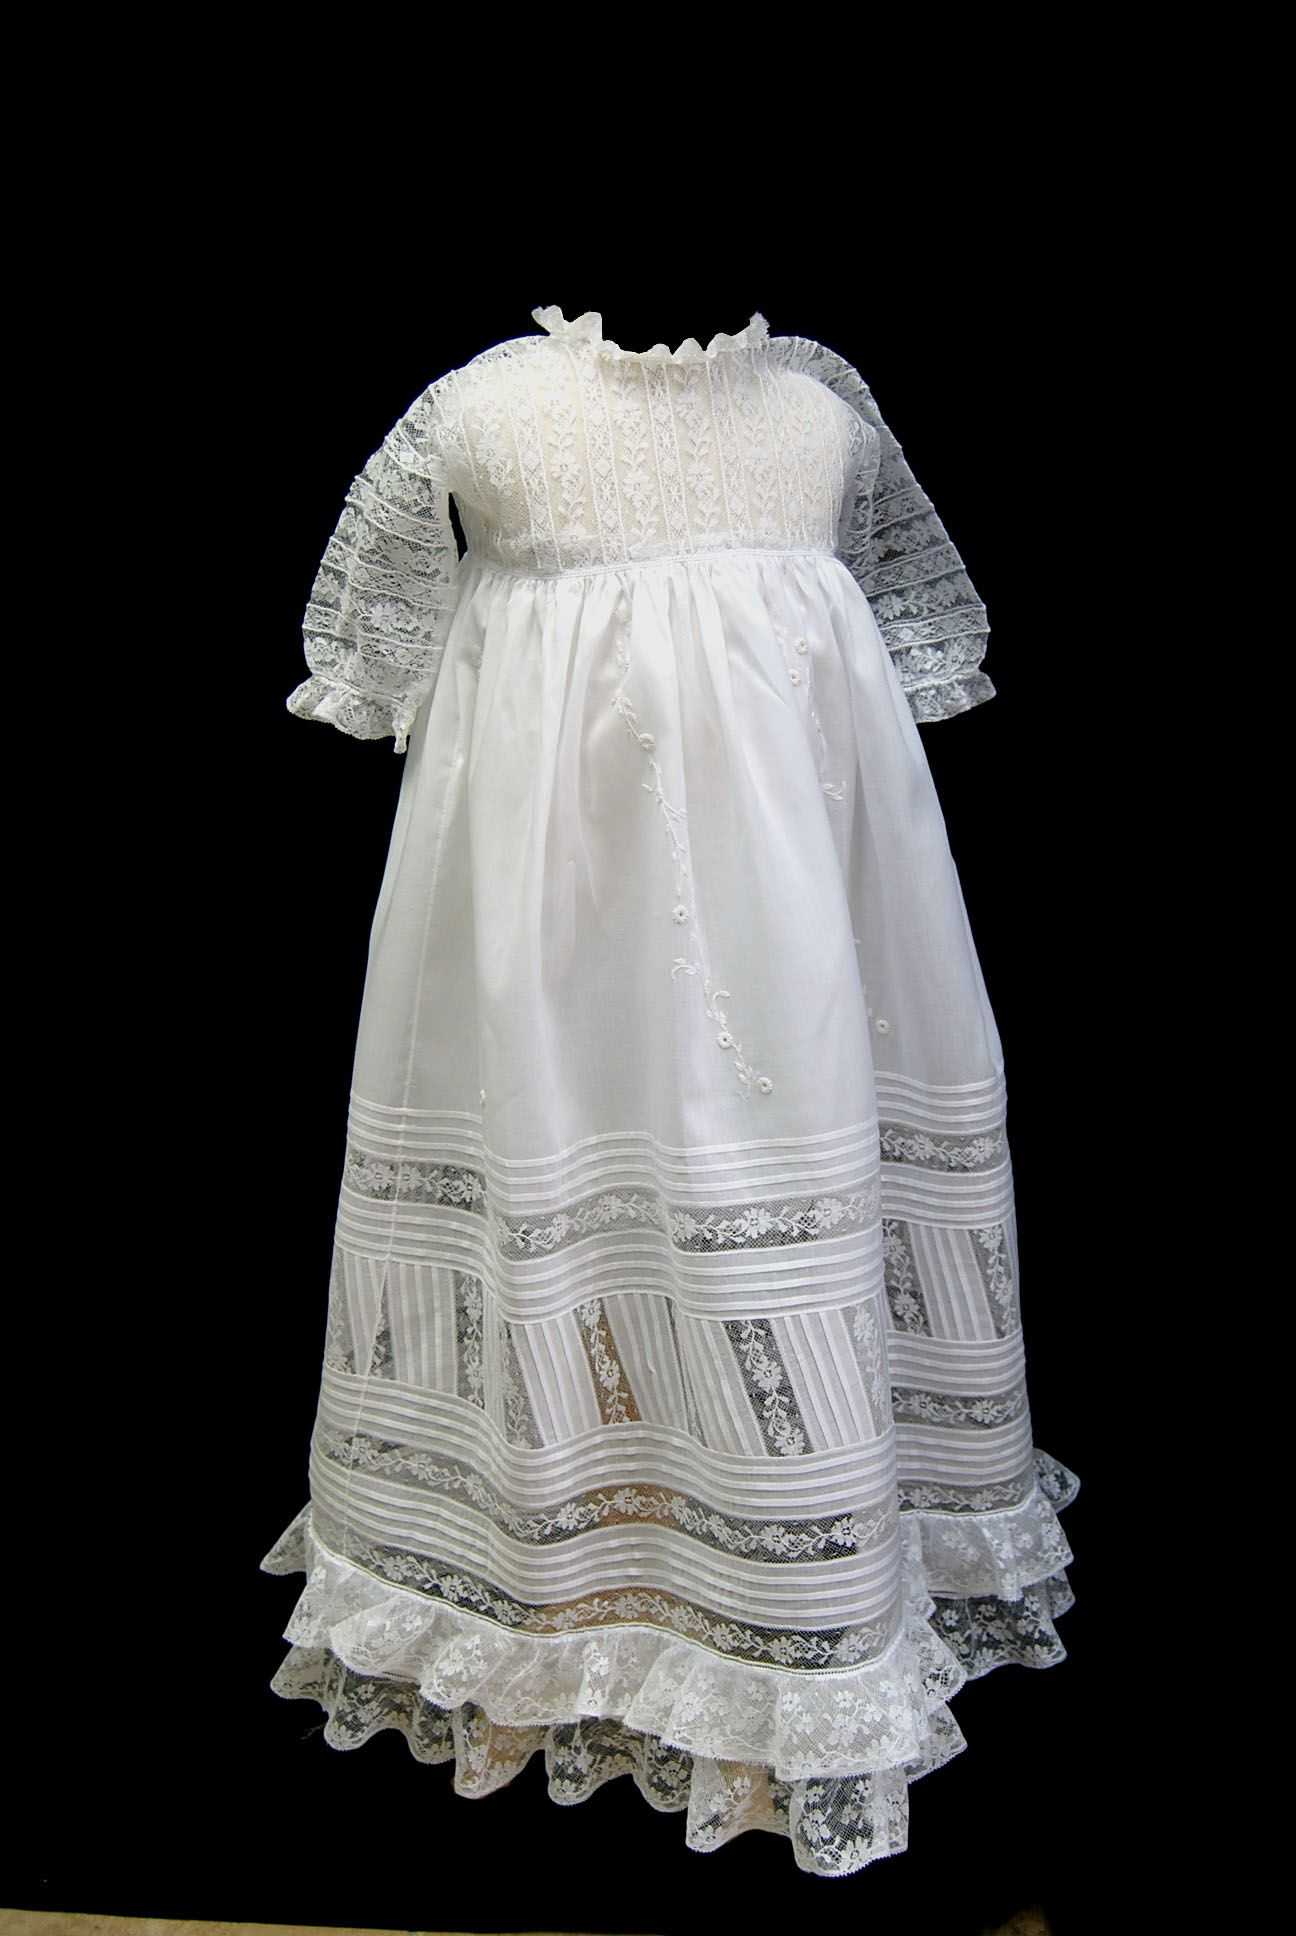 Diagonal Lace Christening Gown | Childhood Sacraments | Pinterest ...